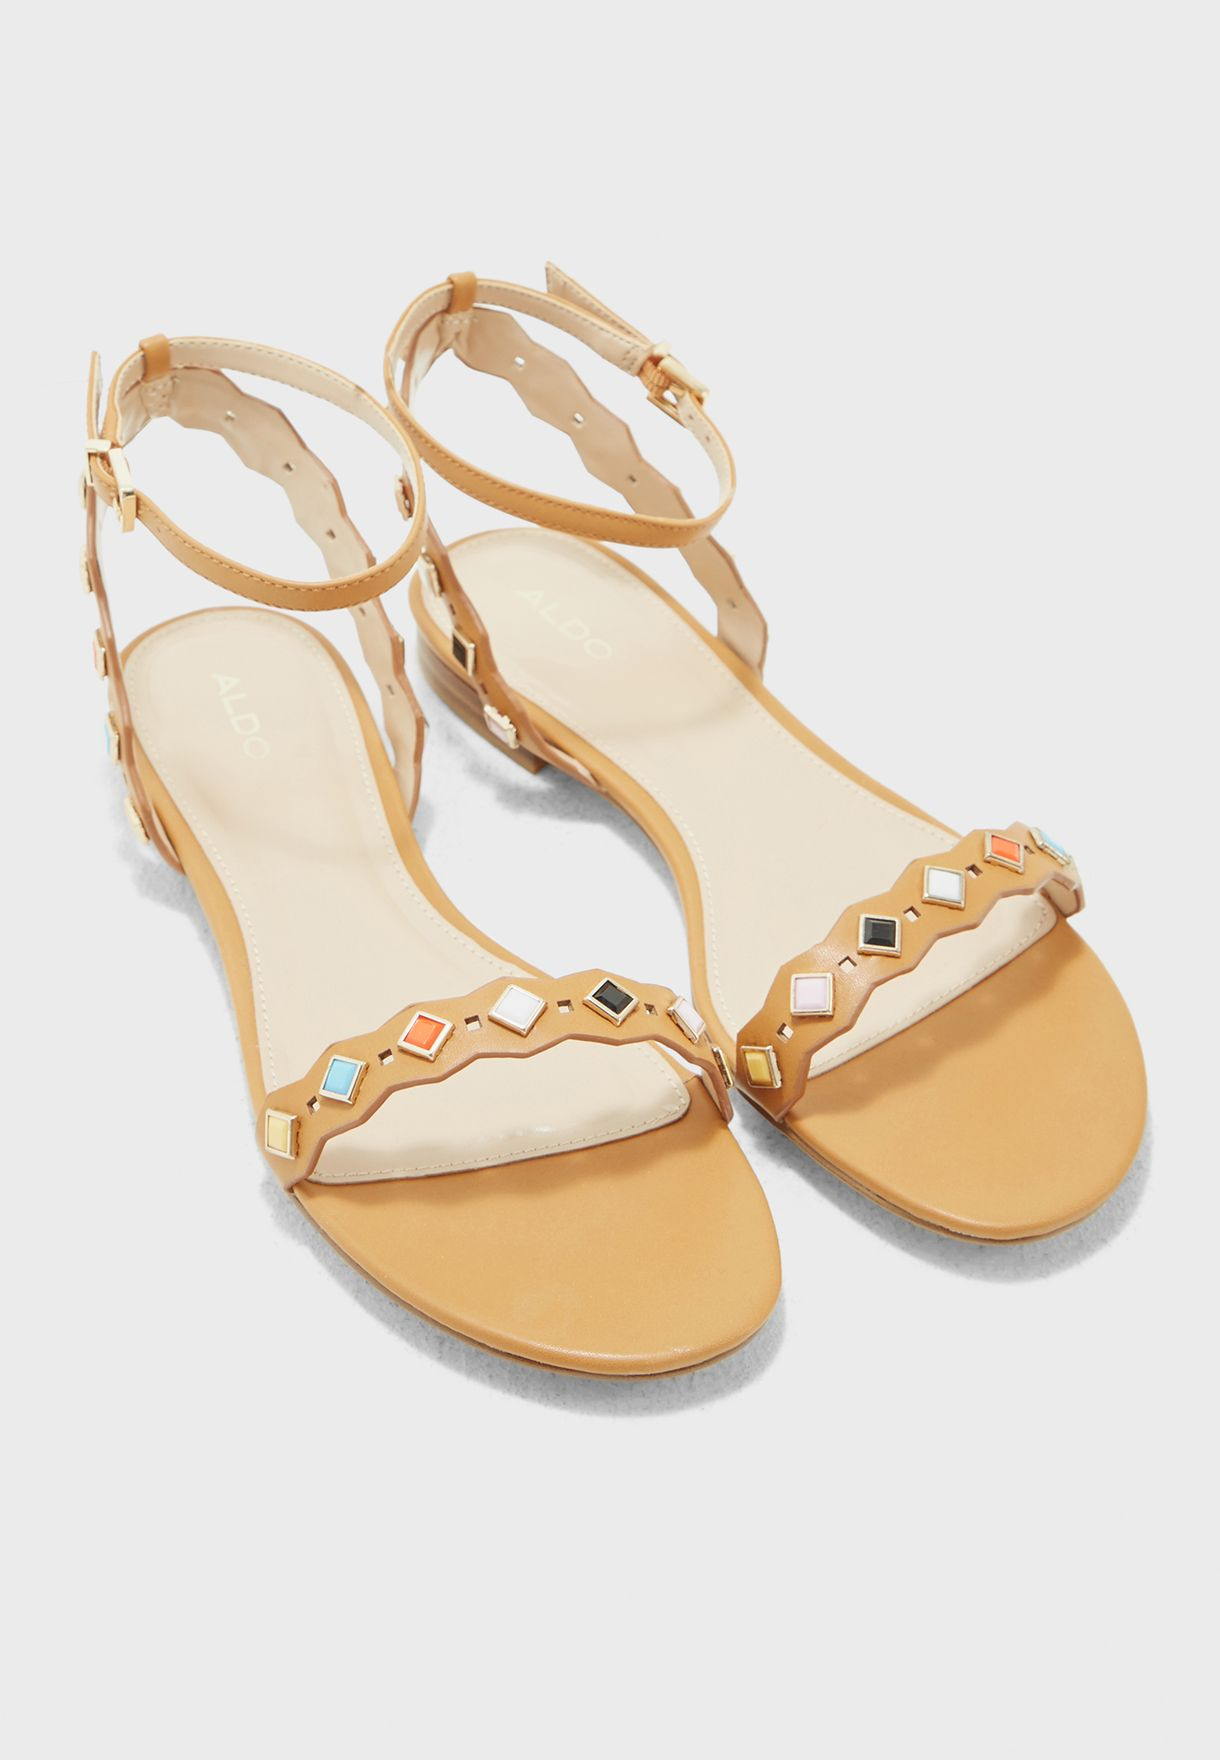 6aa4e35997b0a1 Shop Aldo browns AMELIE Sandals AMELIE28 for Women in Bahrain ...